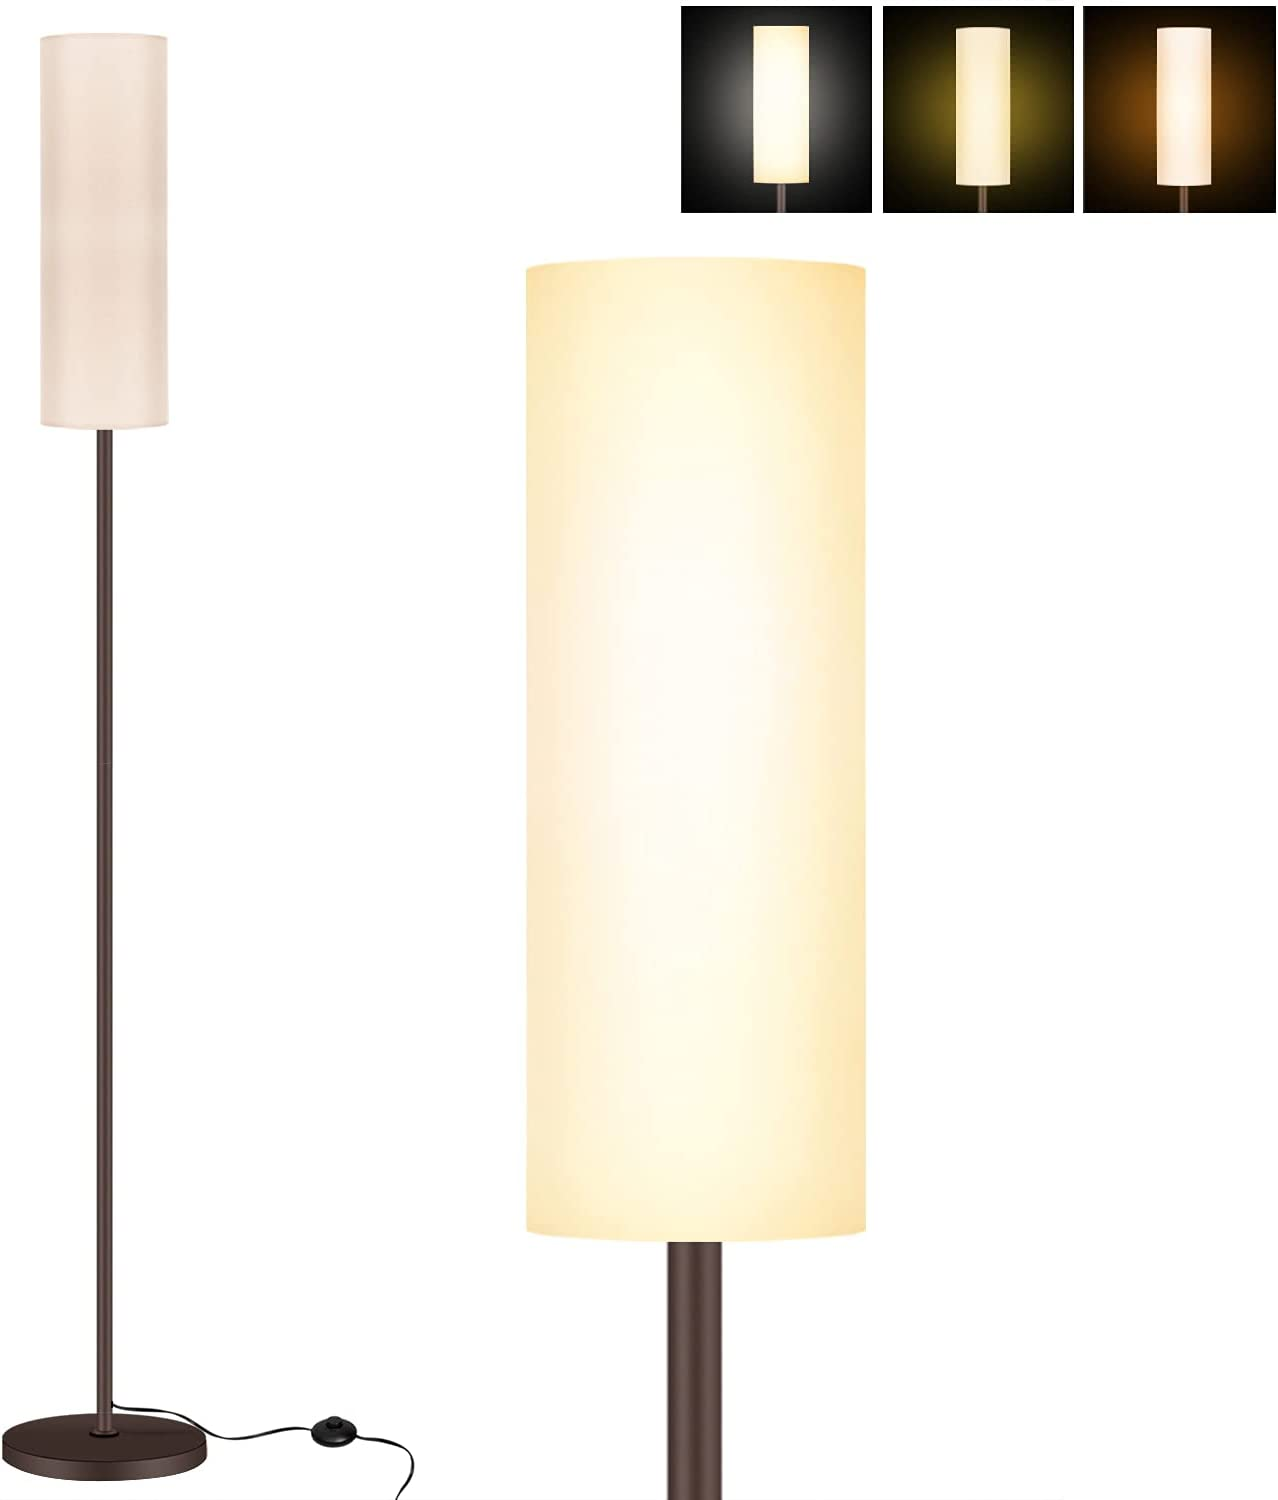 KIKET HOME Floor Lamp, Modern Design Standing Light with Linen Lamp Shade, Tall Lamp for Living Room/Bedroom/Study Room/Office with E26 Lamp Base (3-Color LED Bulb Included)